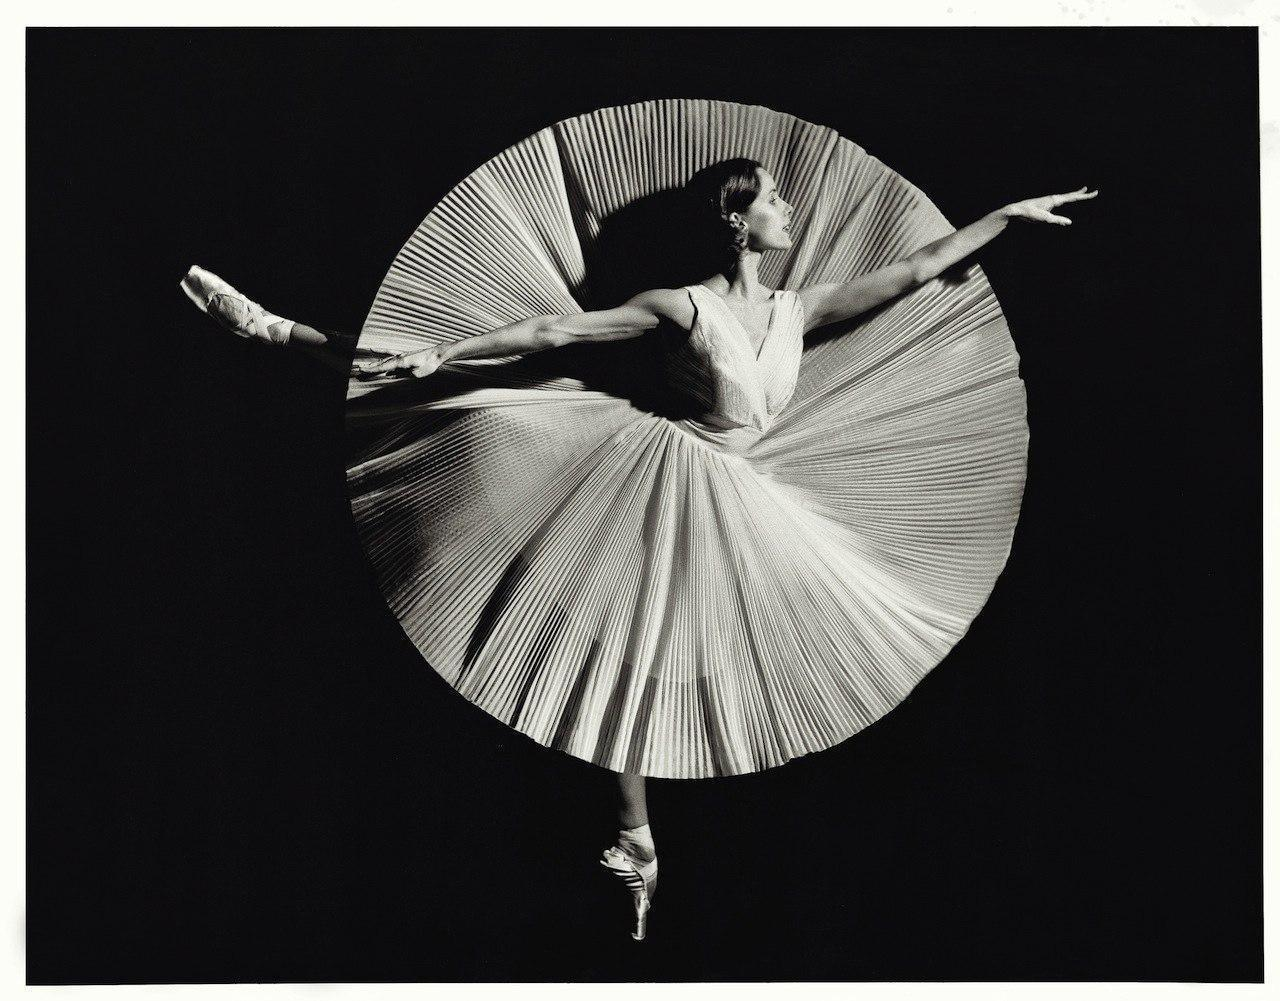 art, balley, black and white, circle, dance